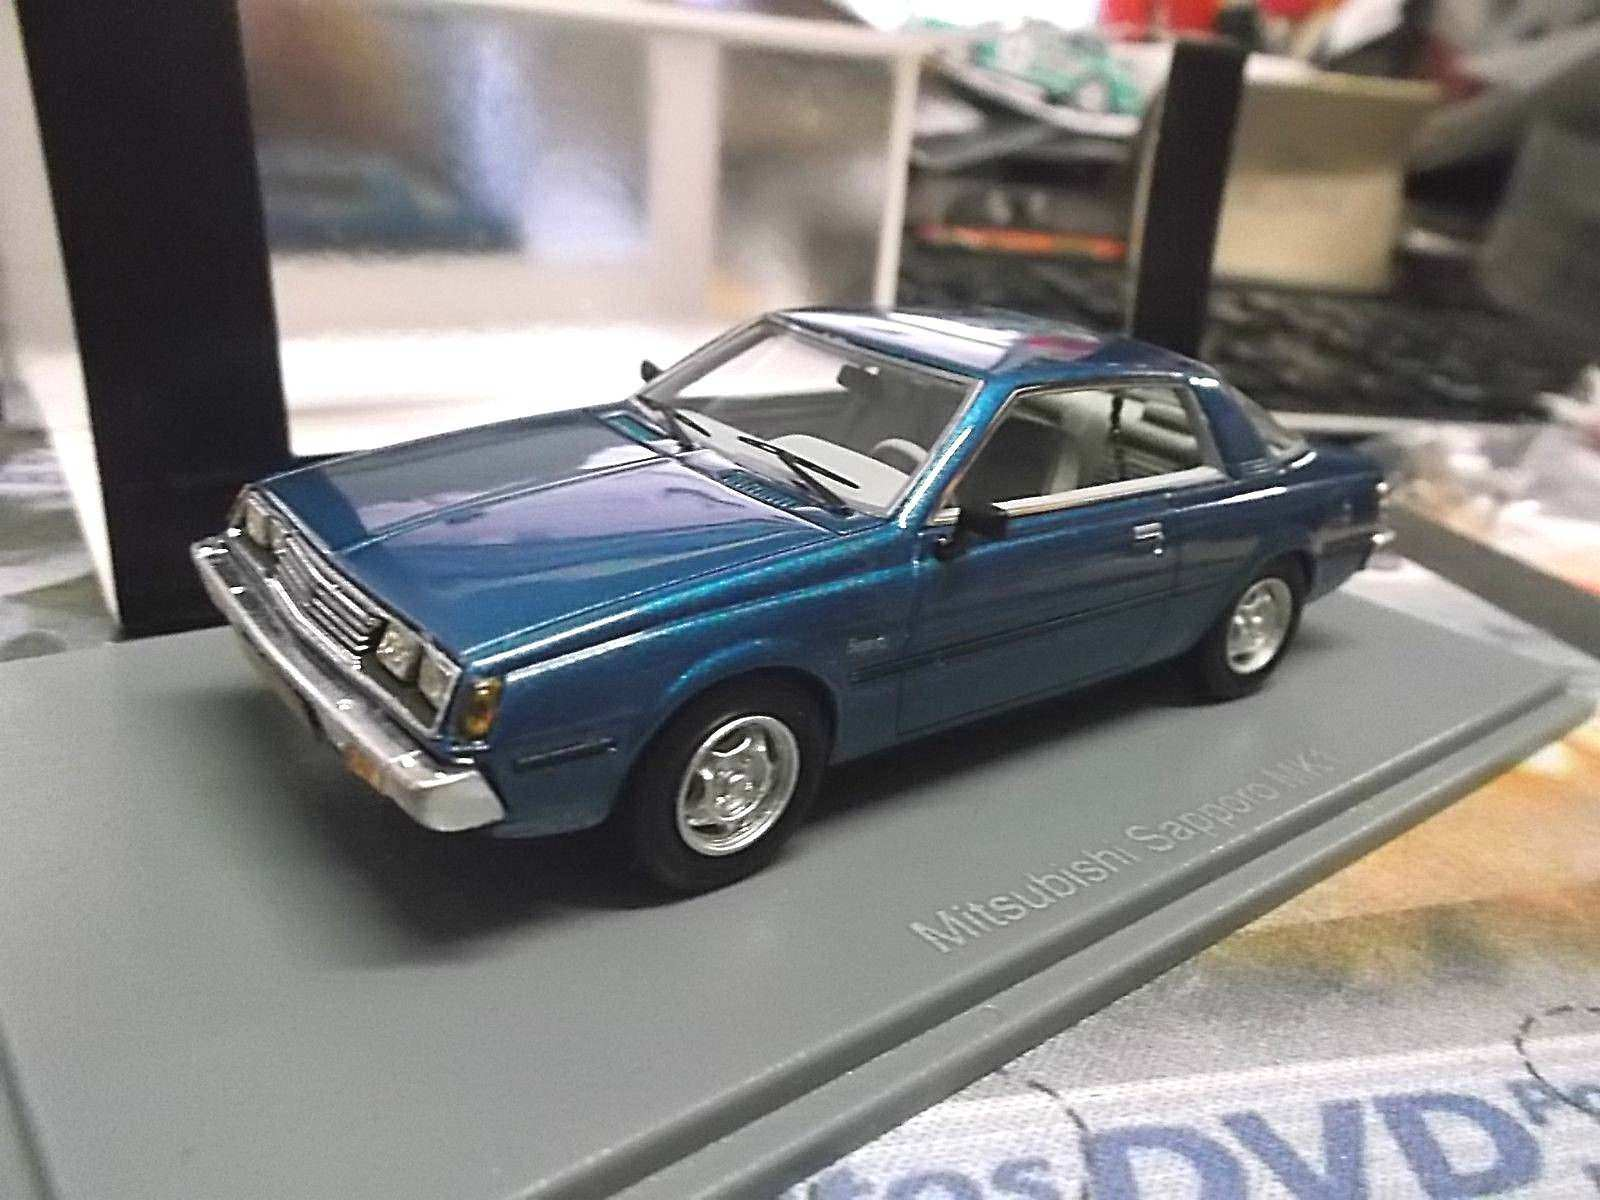 MITSUBISHI Sappgold Coupe A121 A123 1975 – 1980 bluee met bl Resin SPreis NEO 1 43